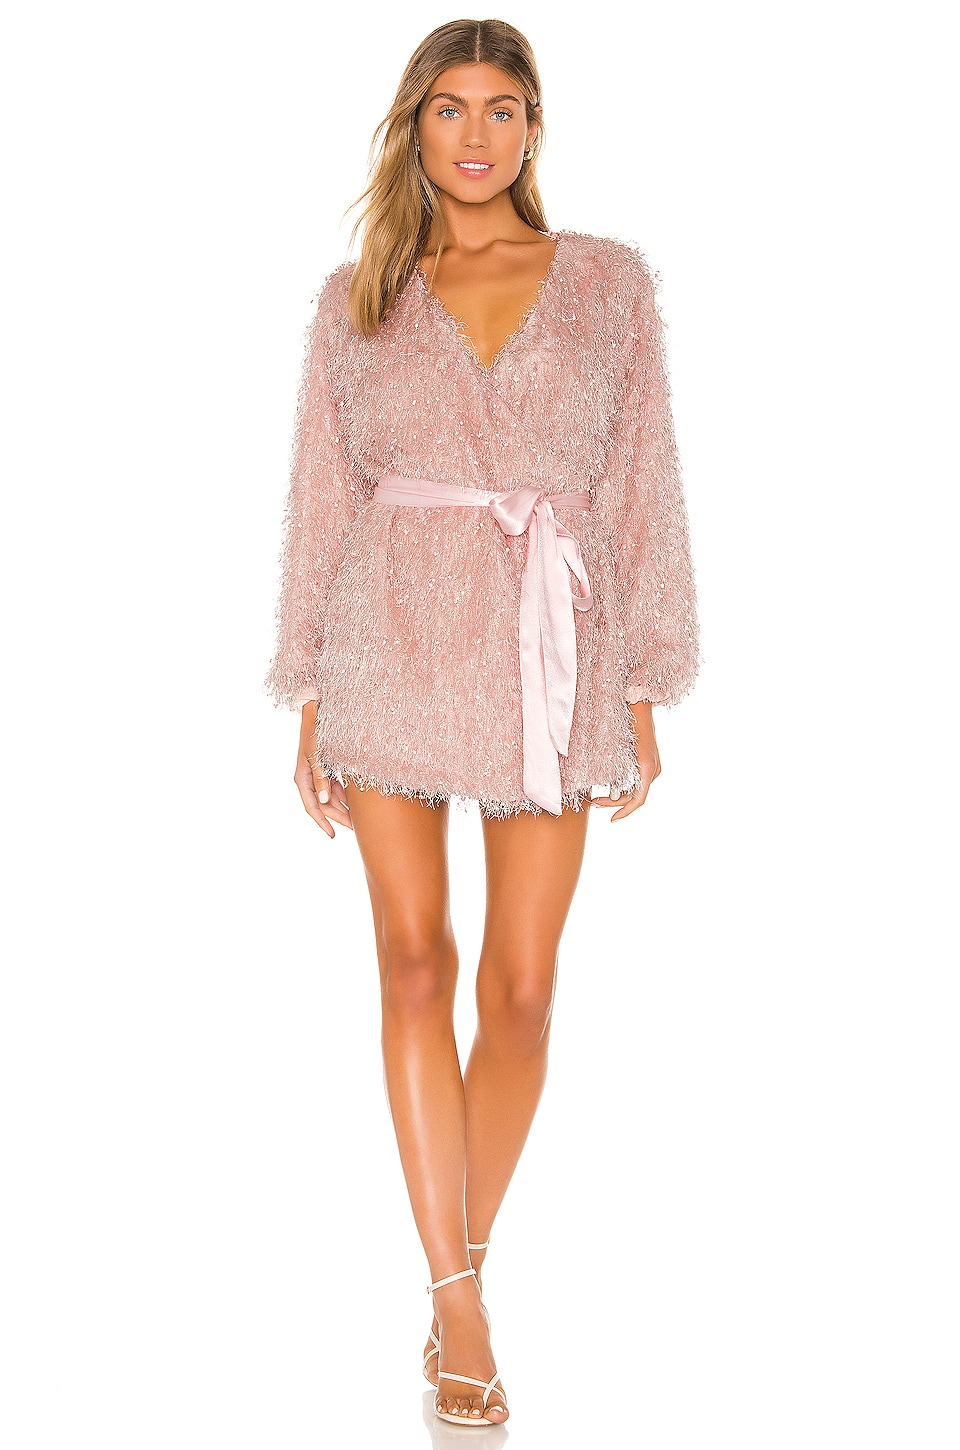 Lovers + Friends Fifth Avenue Mini Dress in Blush Pink